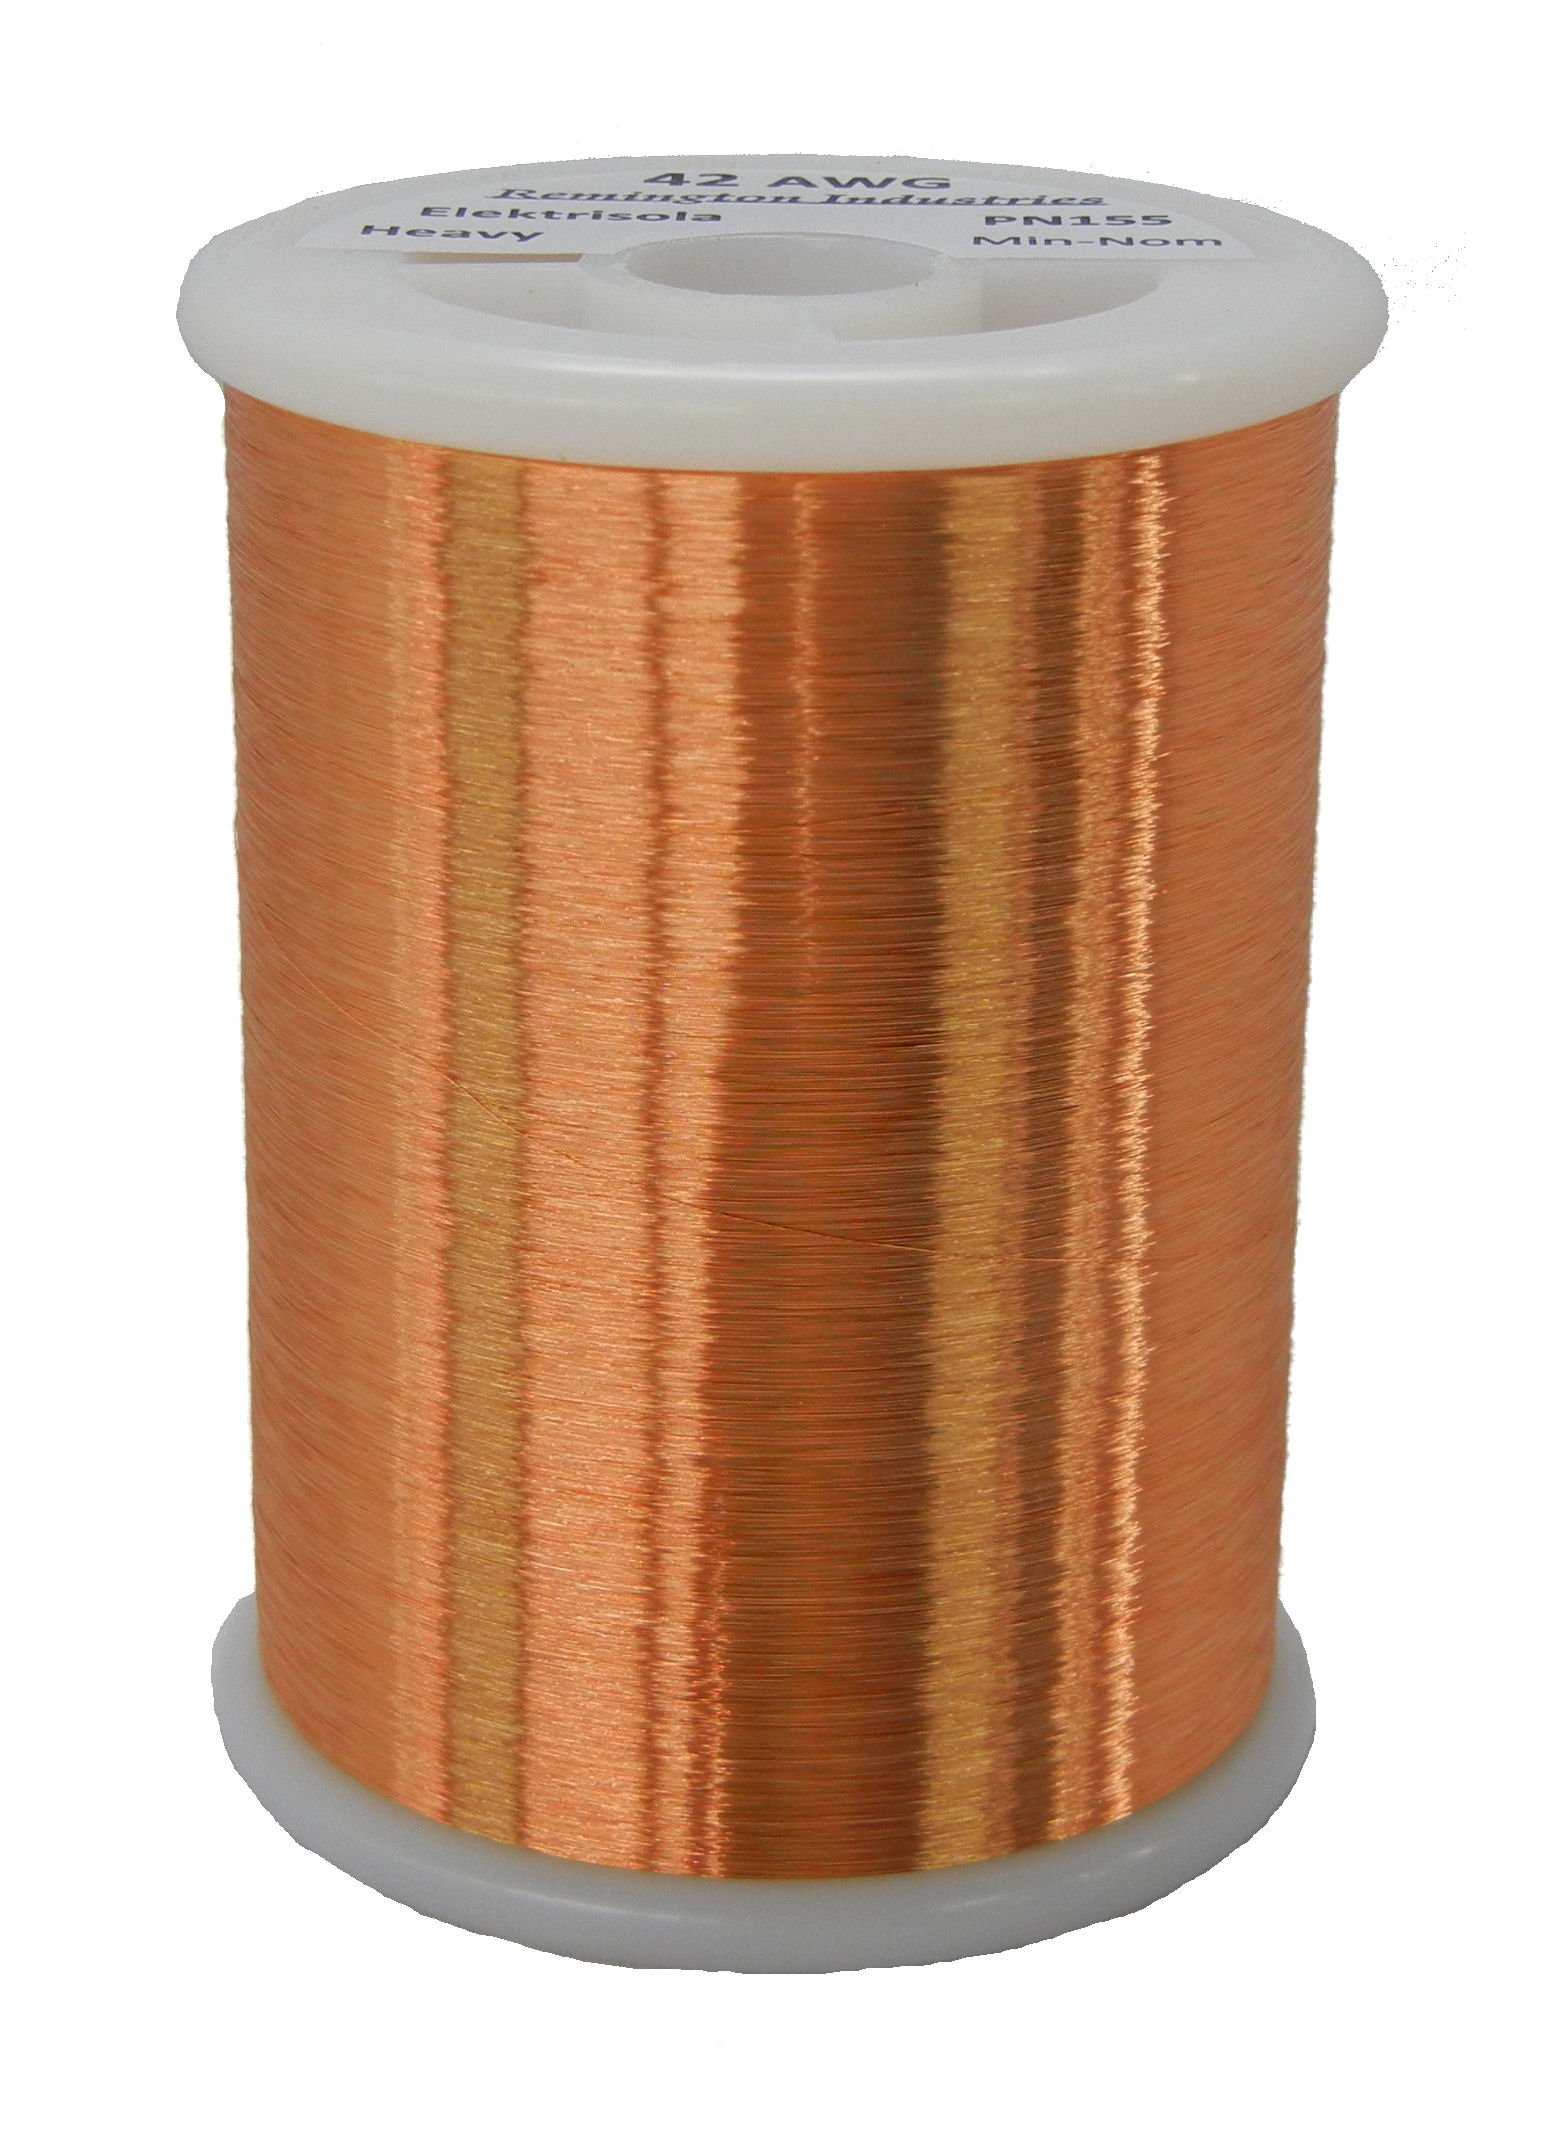 Remington Industries 42SNSP 42 AWG Magnet Wire, Enameled Copper Wire, 1.0 lb, 0.0026'' Diameter, 51313' Length, Natural